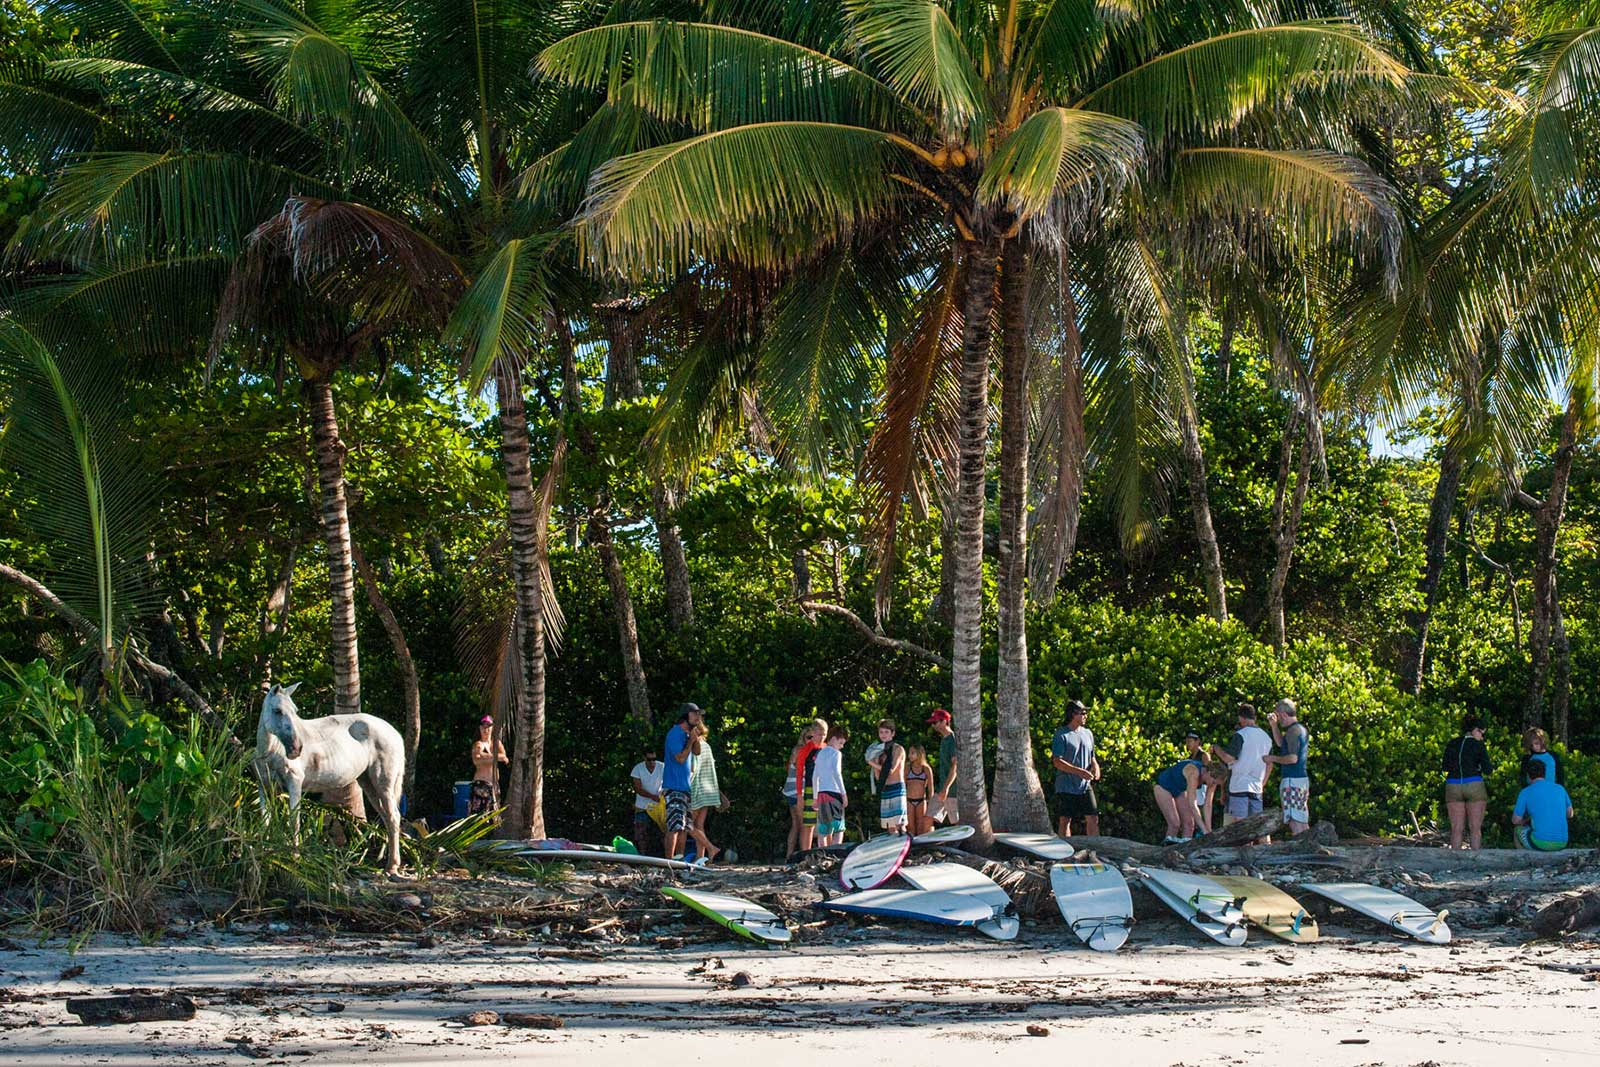 Beach Front Accommodation, Top of the Line Surf Boards, Professional Surf Coaching, Costa Rica